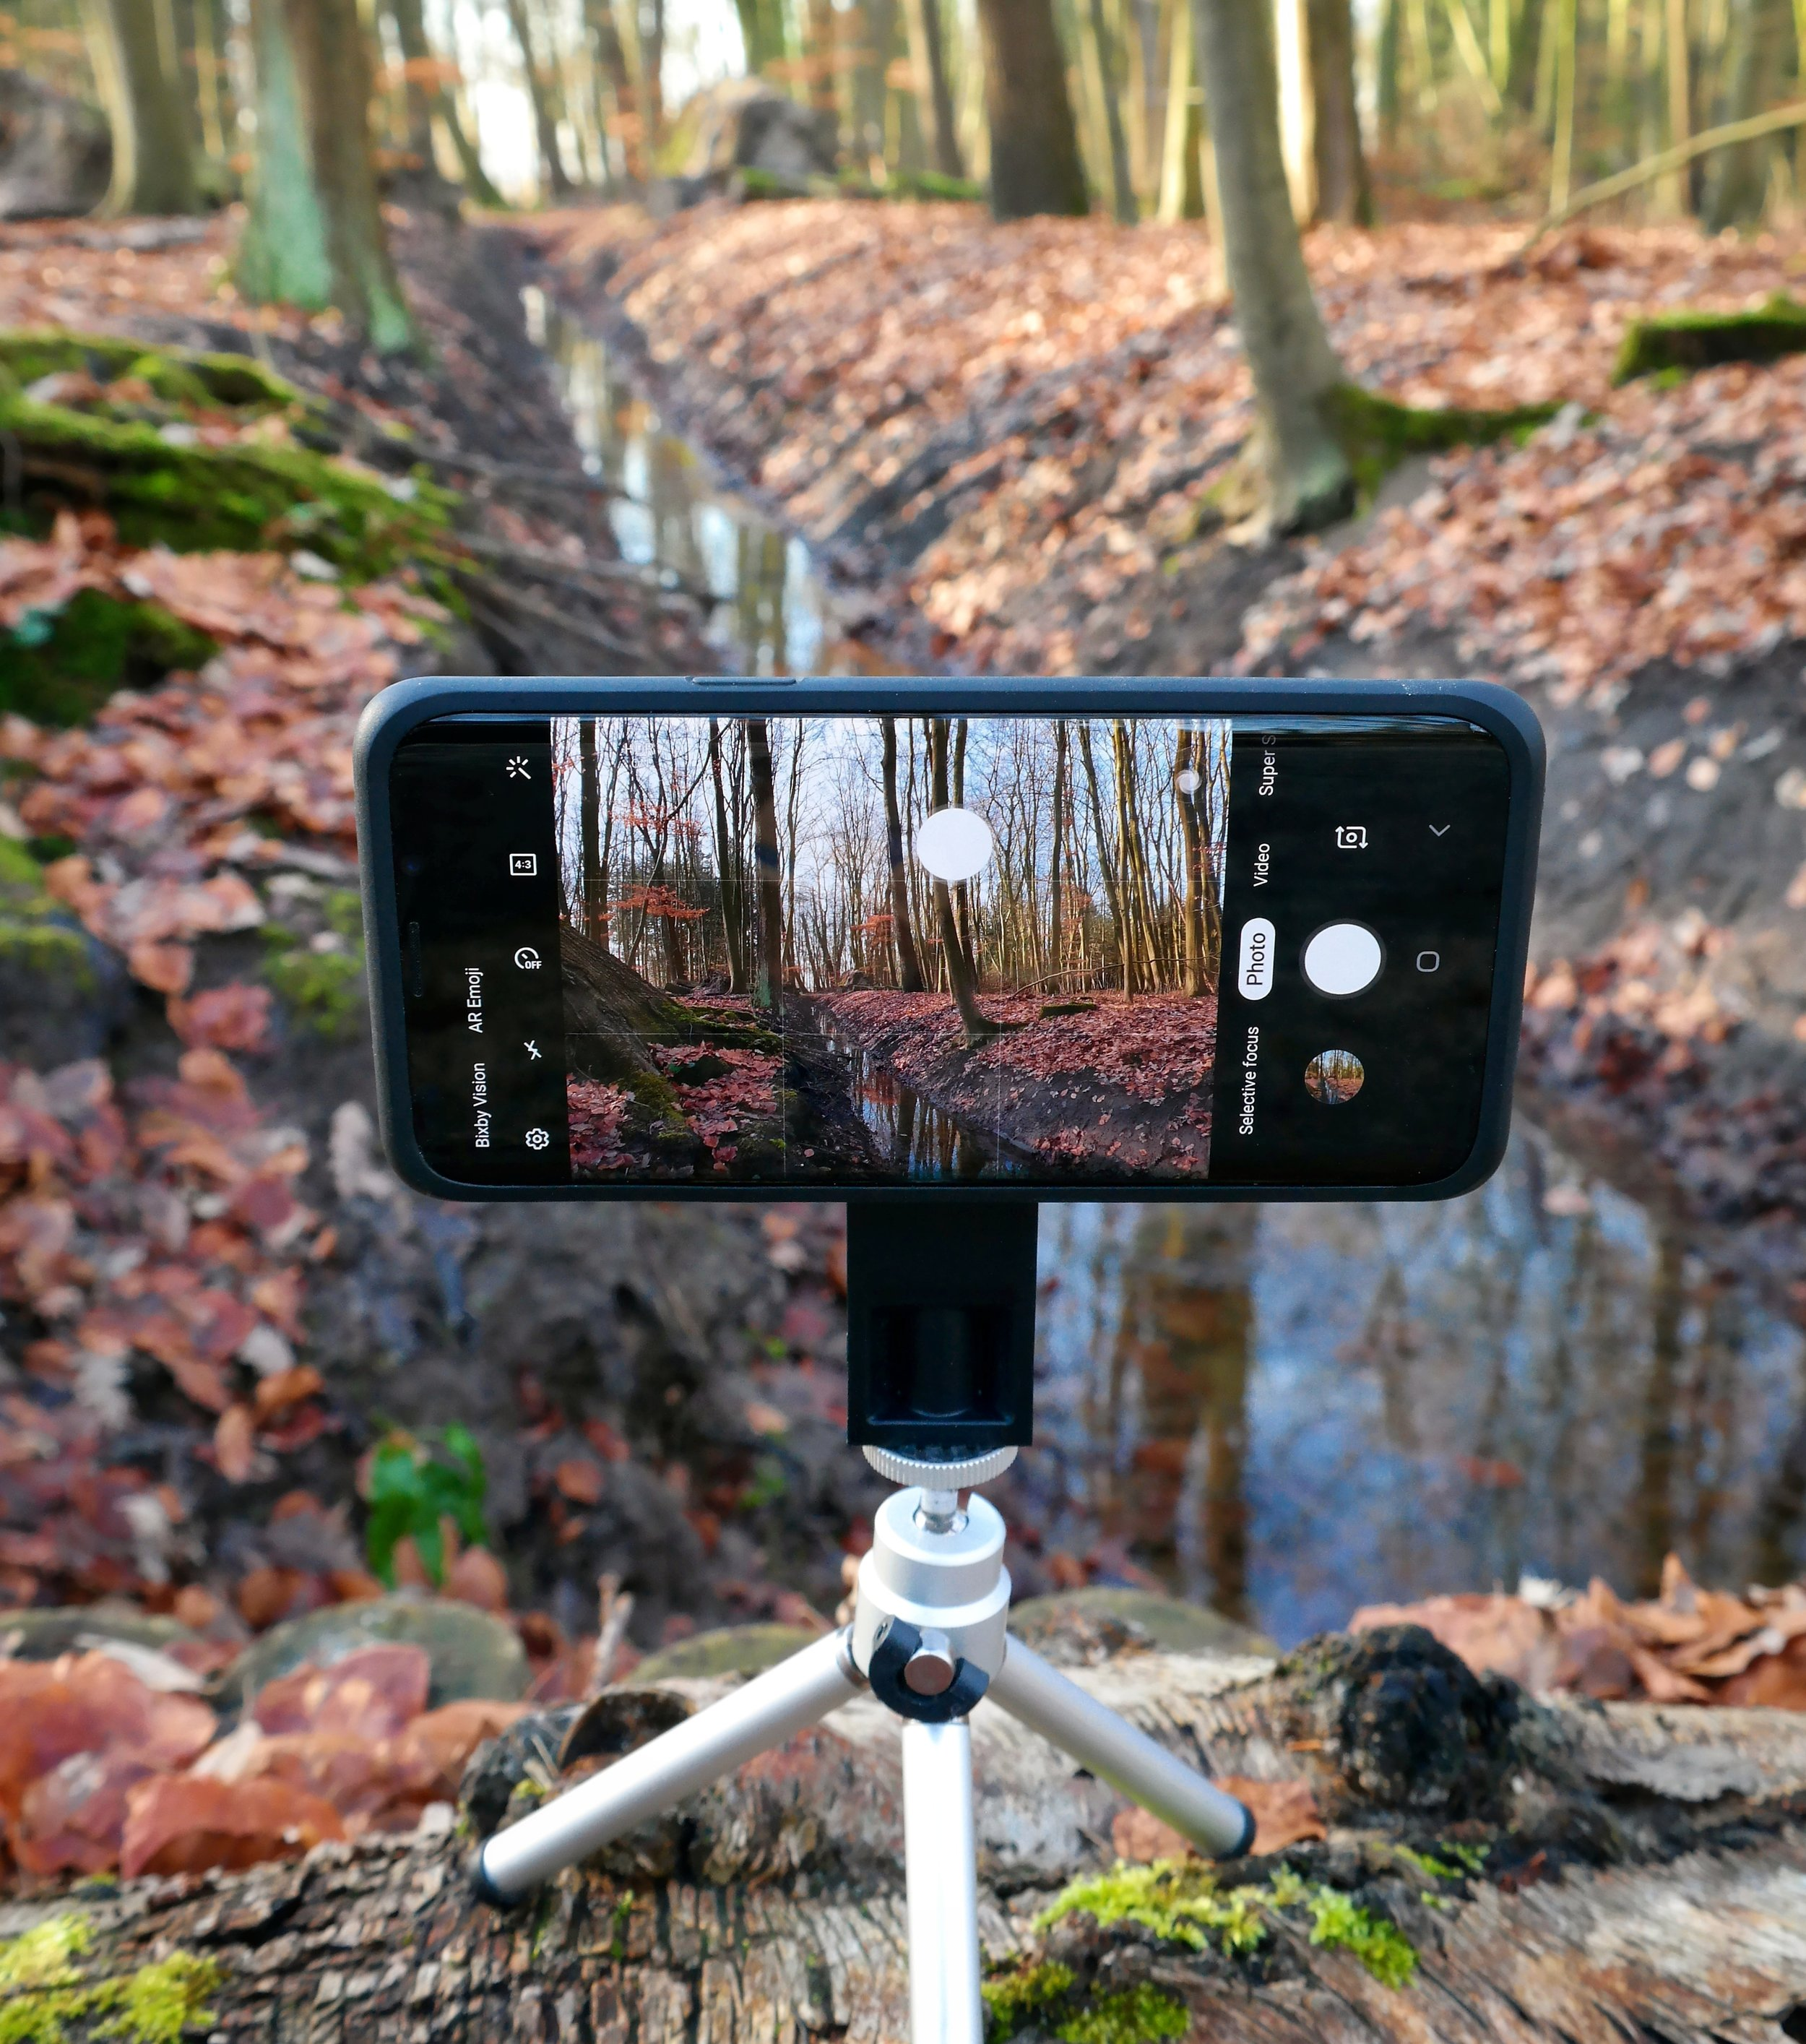 Close up of the Smartphone securely attached to the tripod.